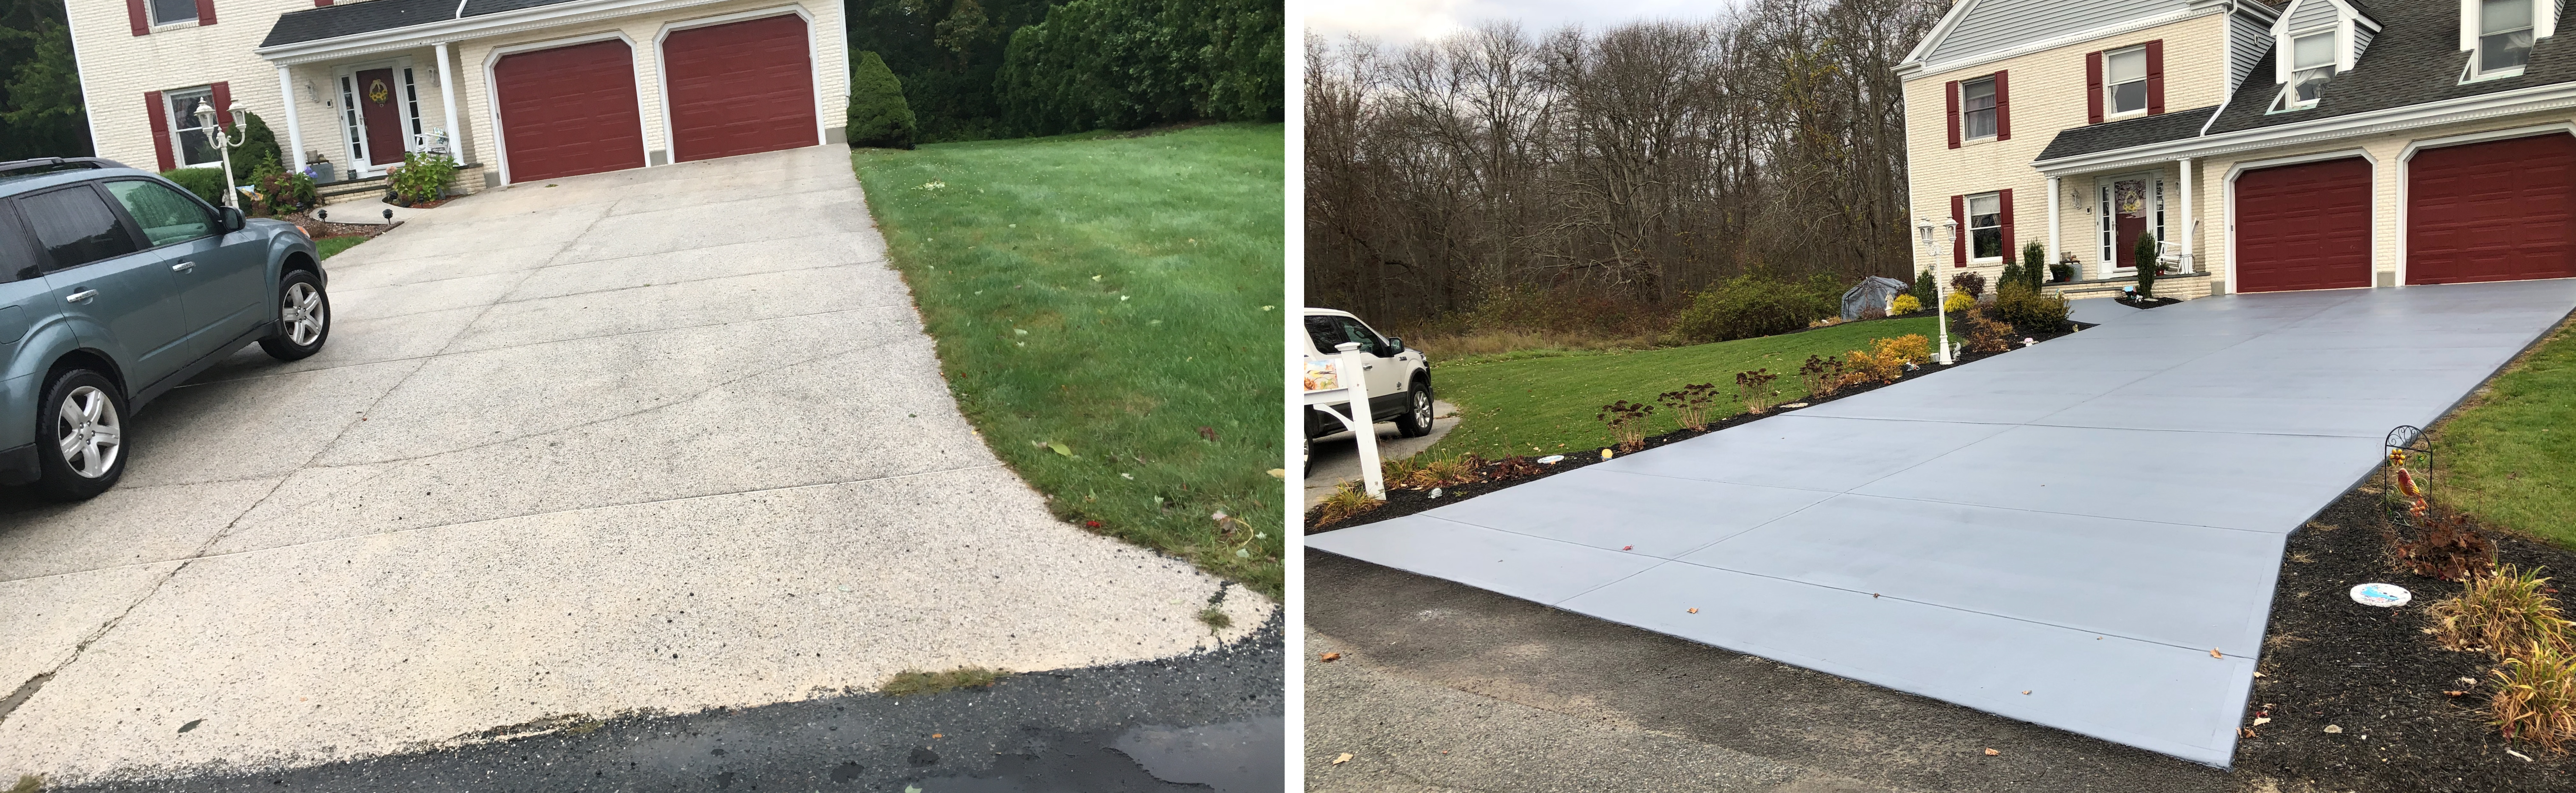 Residential Driveway - Concrete Paint Protection